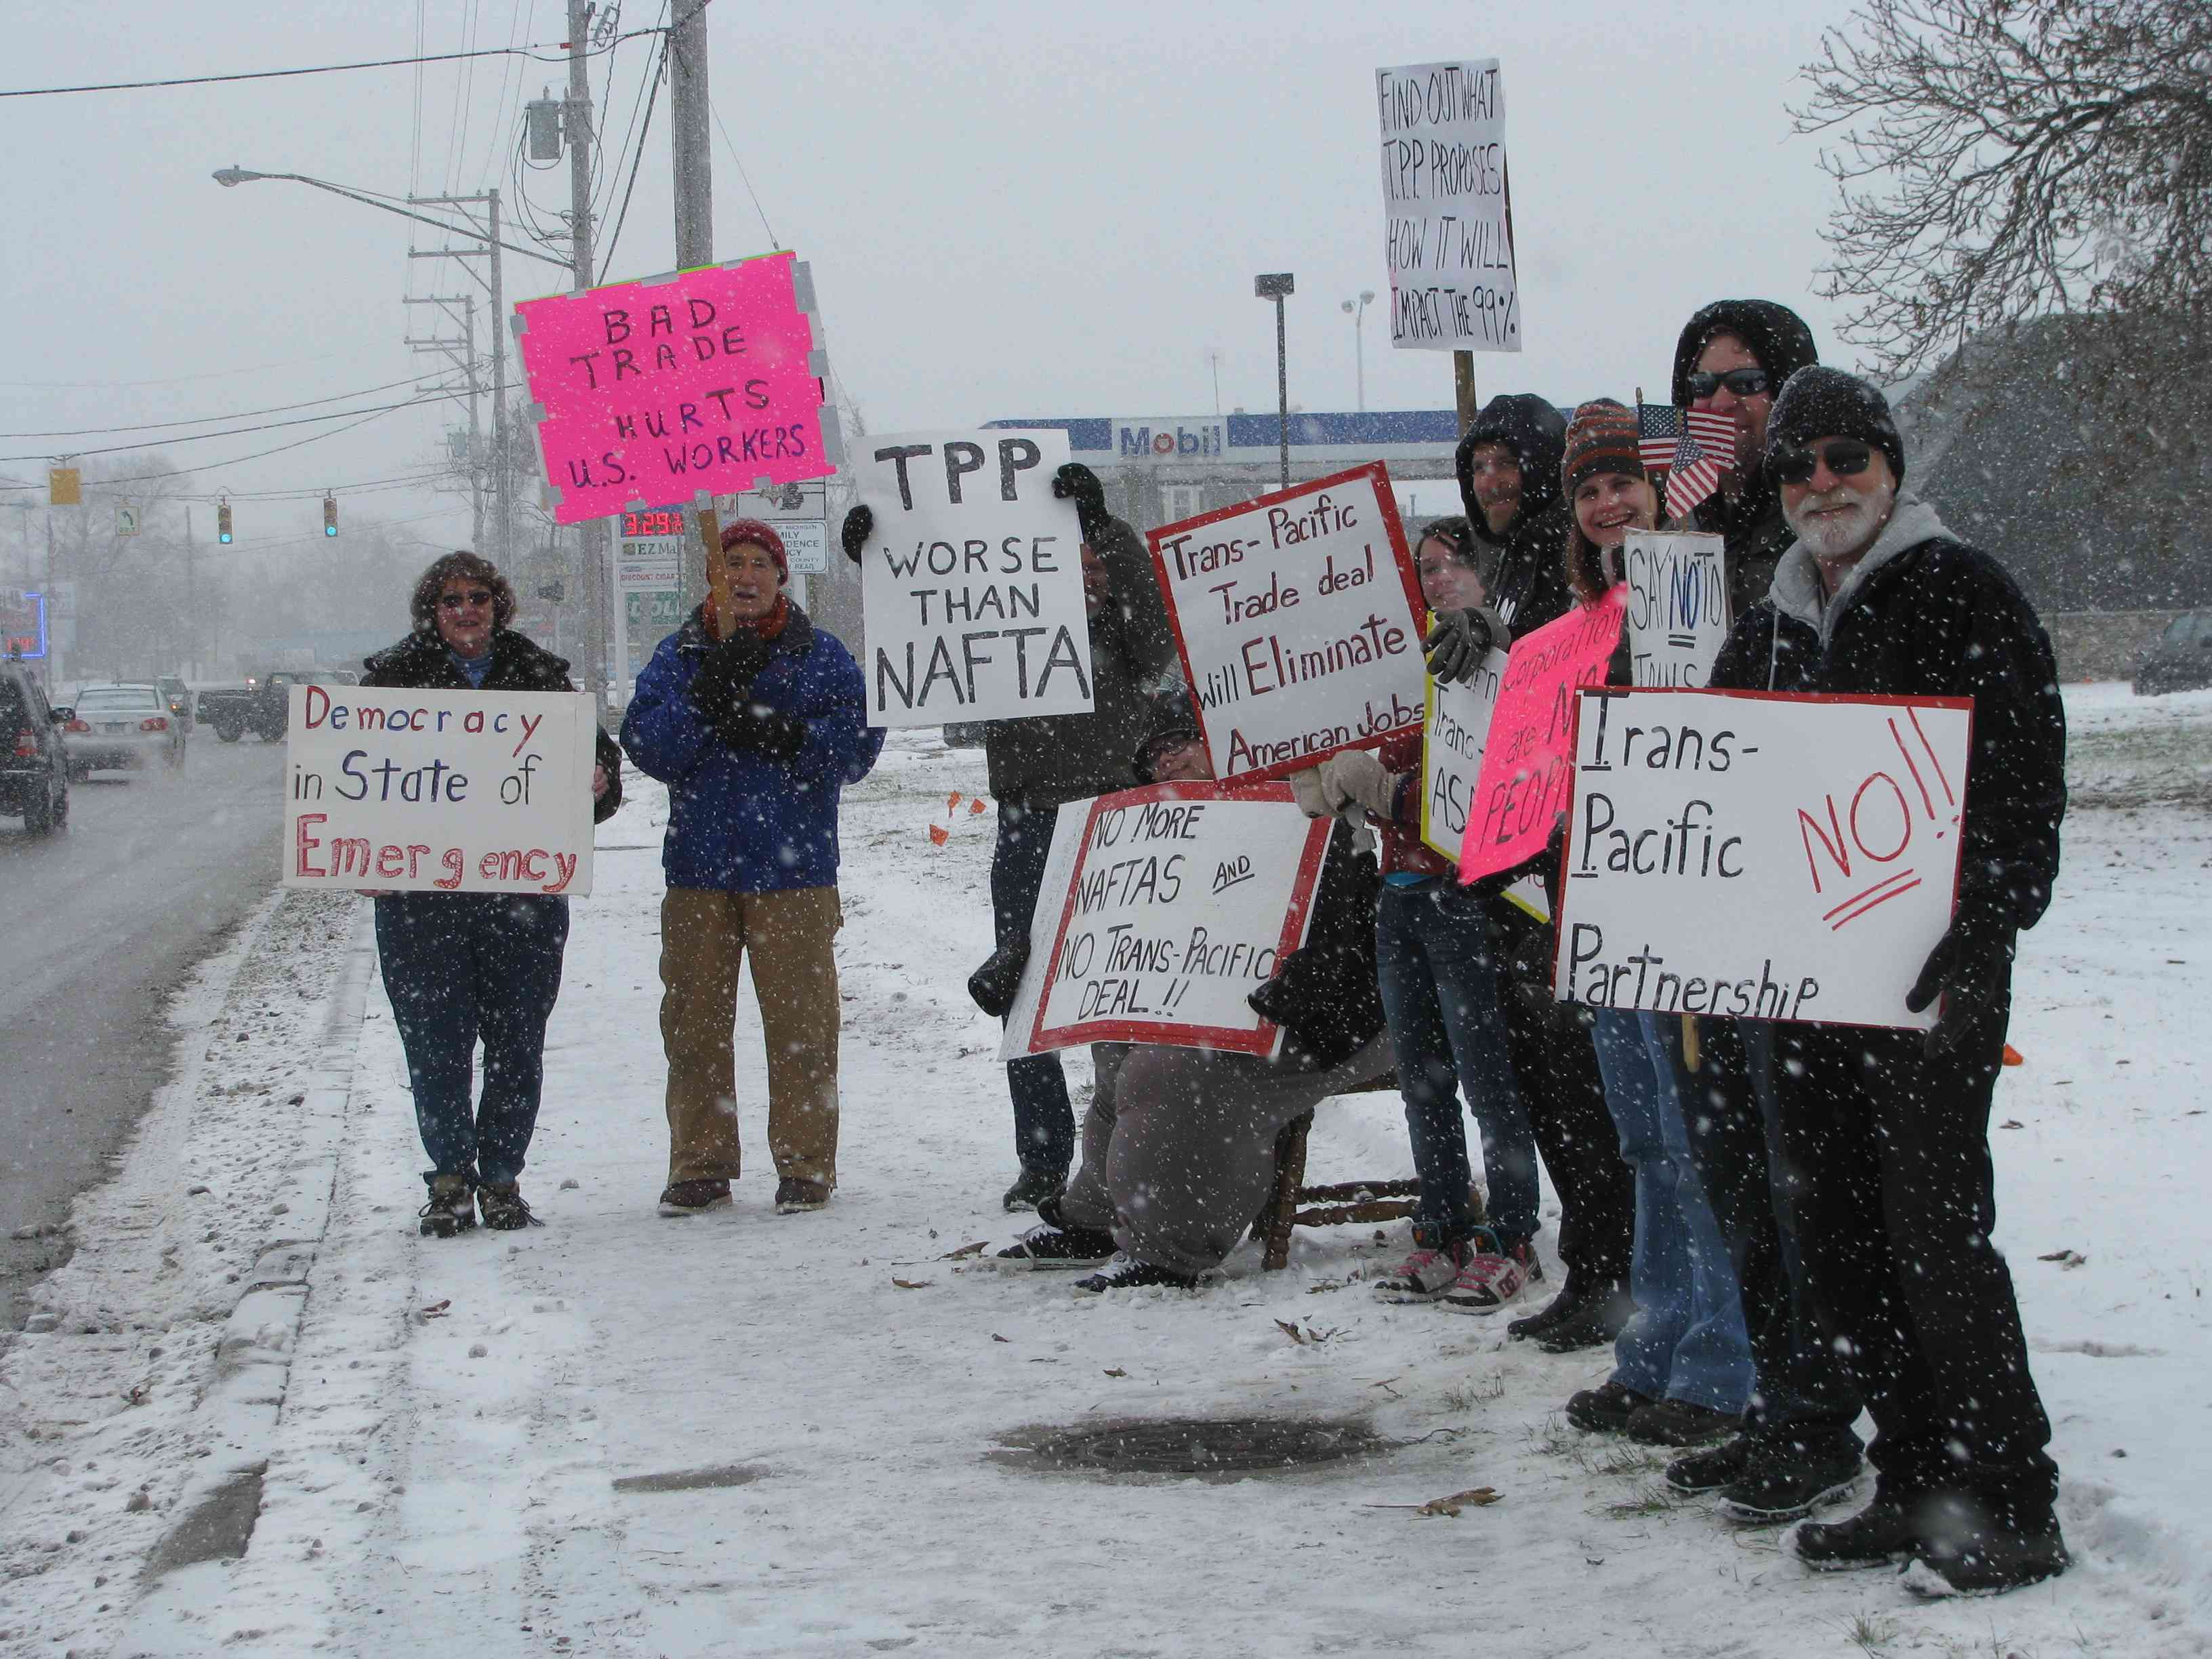 Concerned Citizens in Cheboygan Brave Snow to Expose the TPP